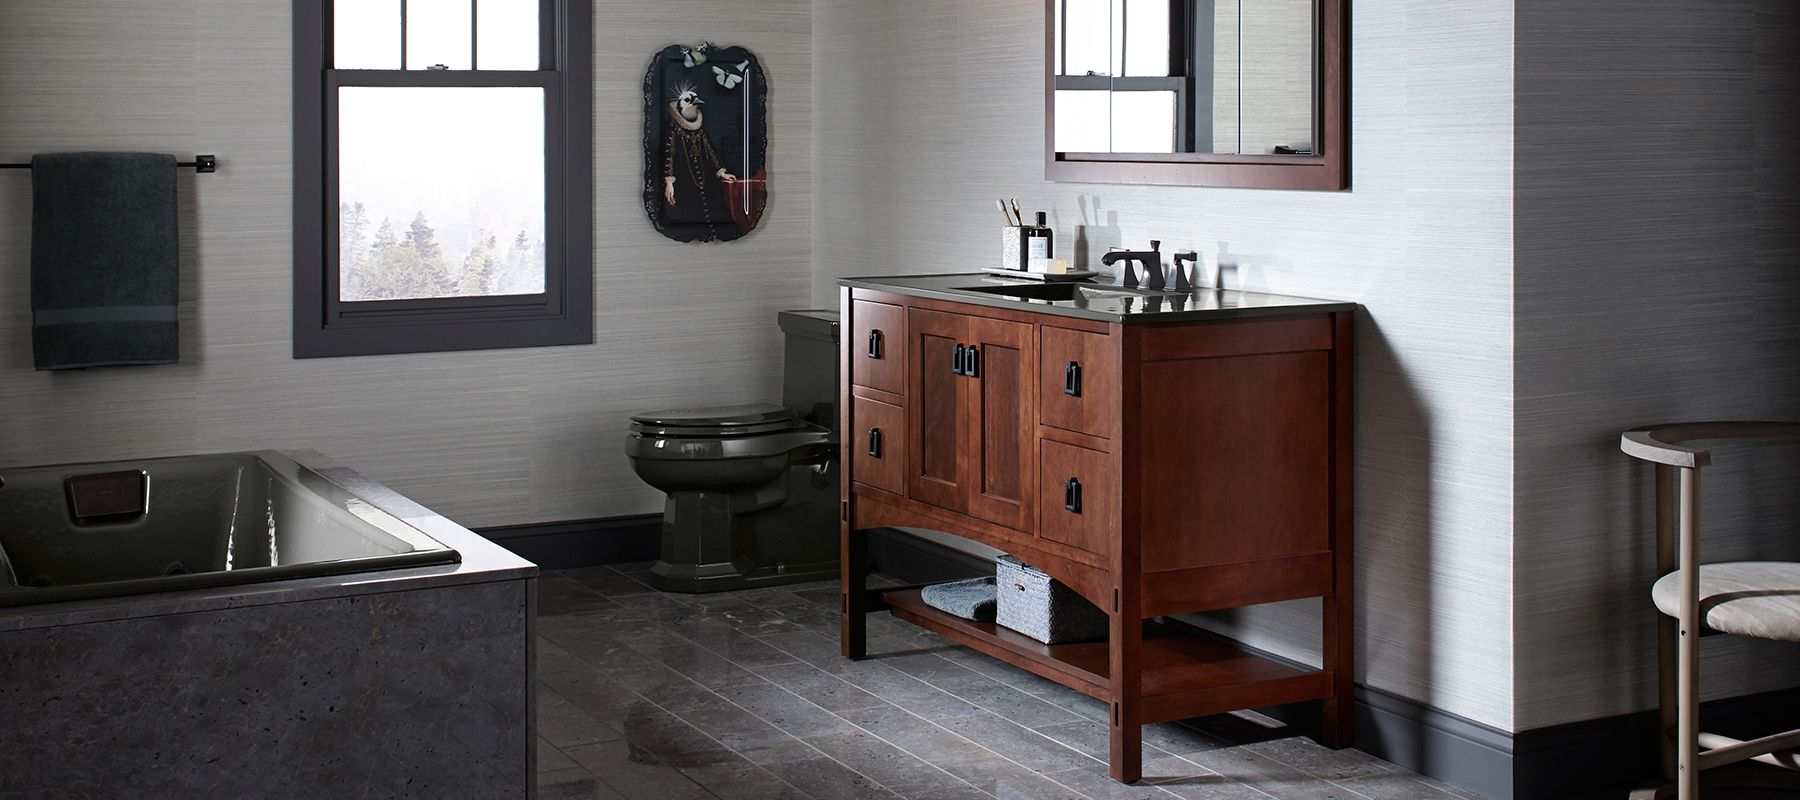 Bathroom Sinks Bathroom KOHLER - 36 x 19 bathroom vanity for bathroom decor ideas